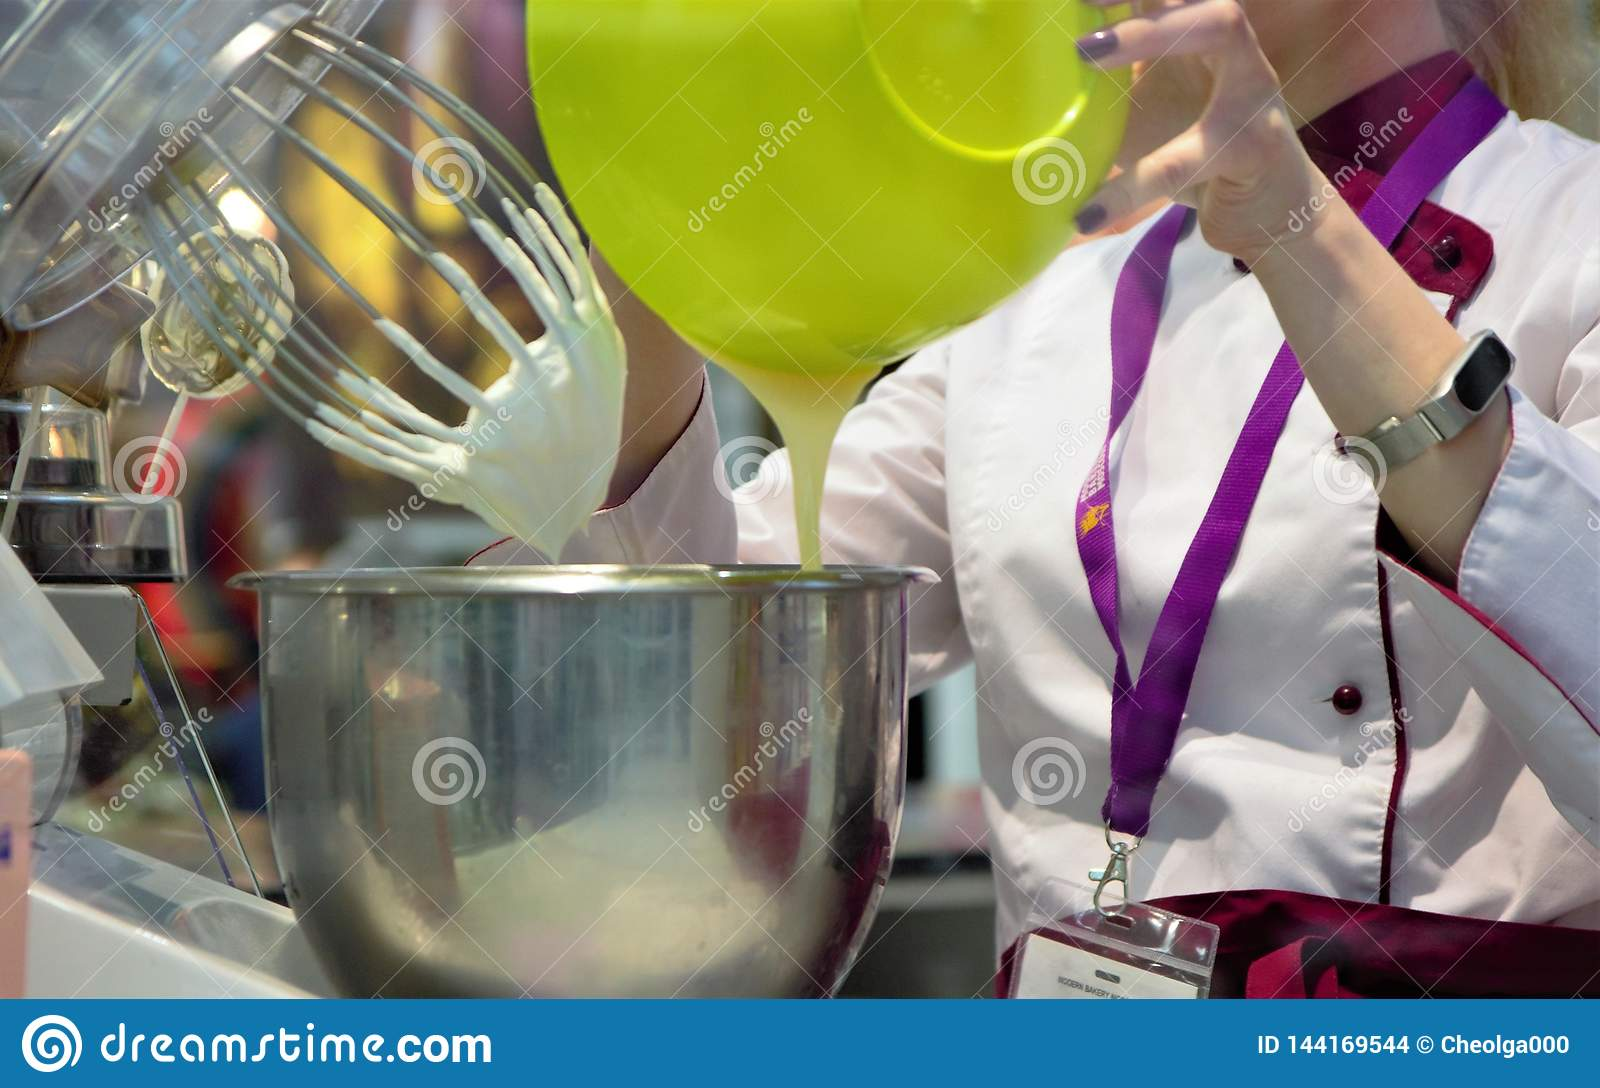 03.14.2019 Russia, Moscow. Exhibition Modern Bakery Moscow. A confectioner kneads a cream using a production machine.